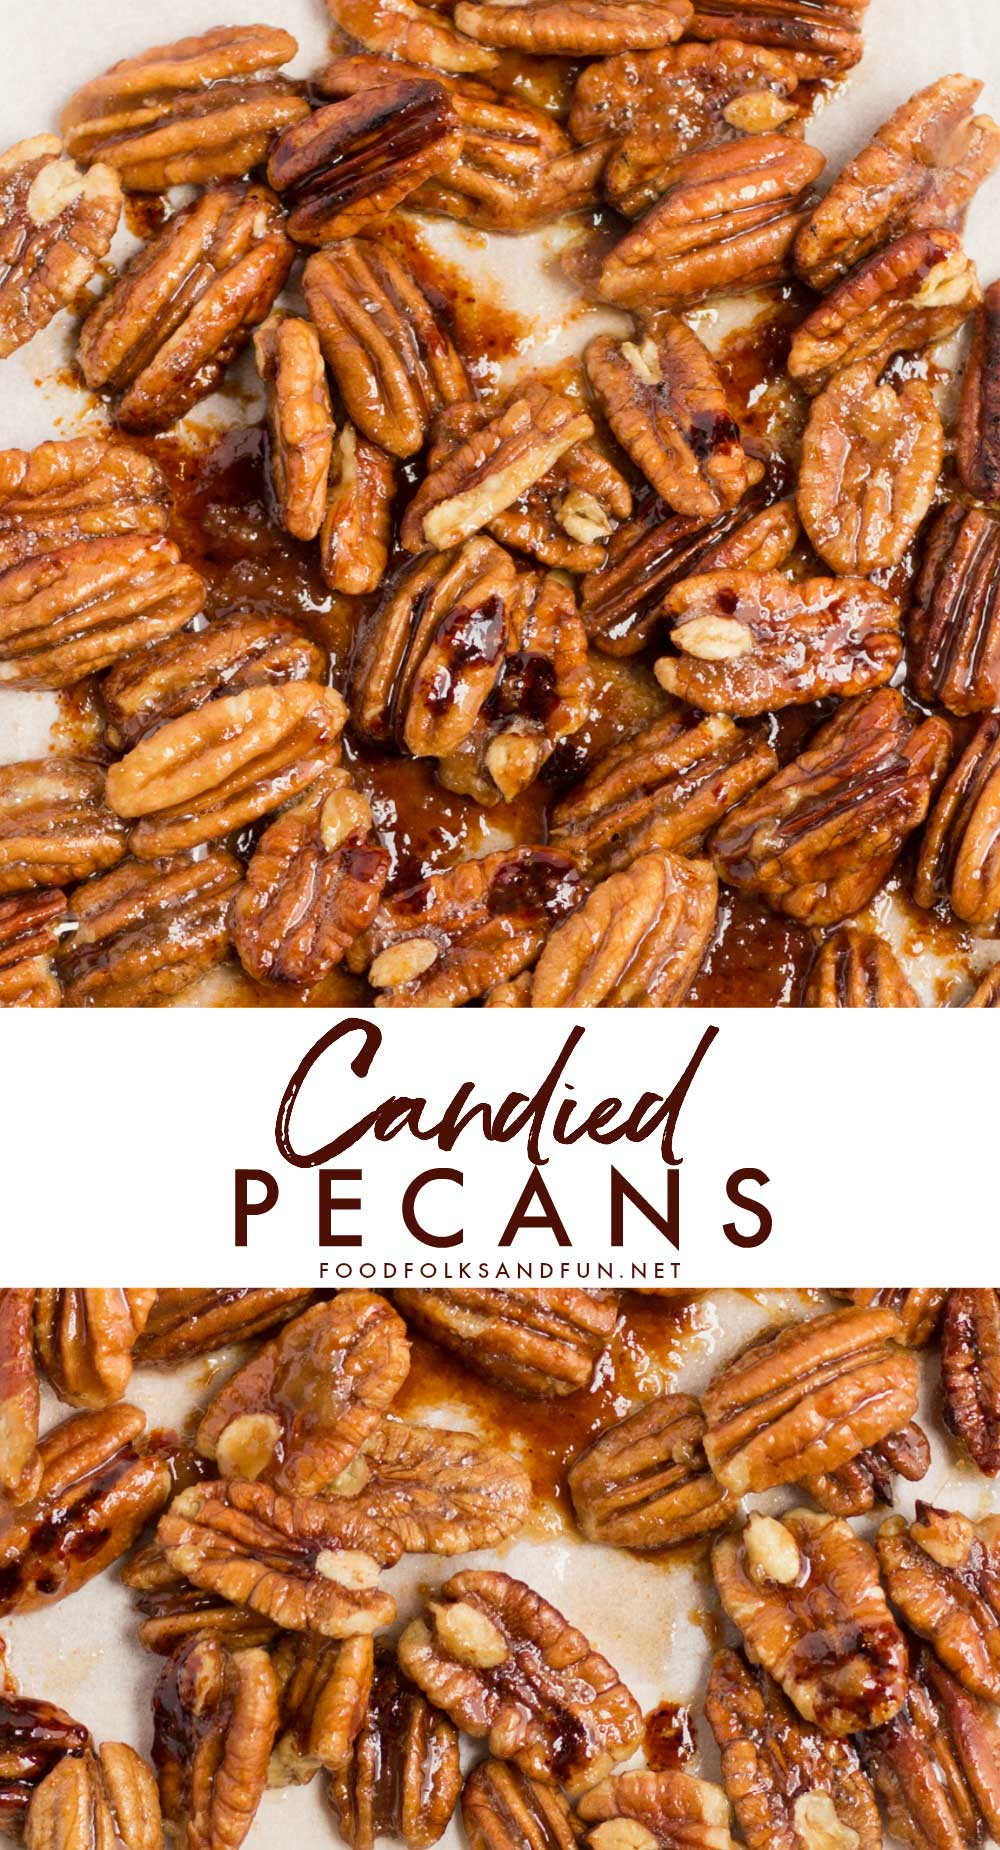 Candied pecans with text overlay for Pinterest